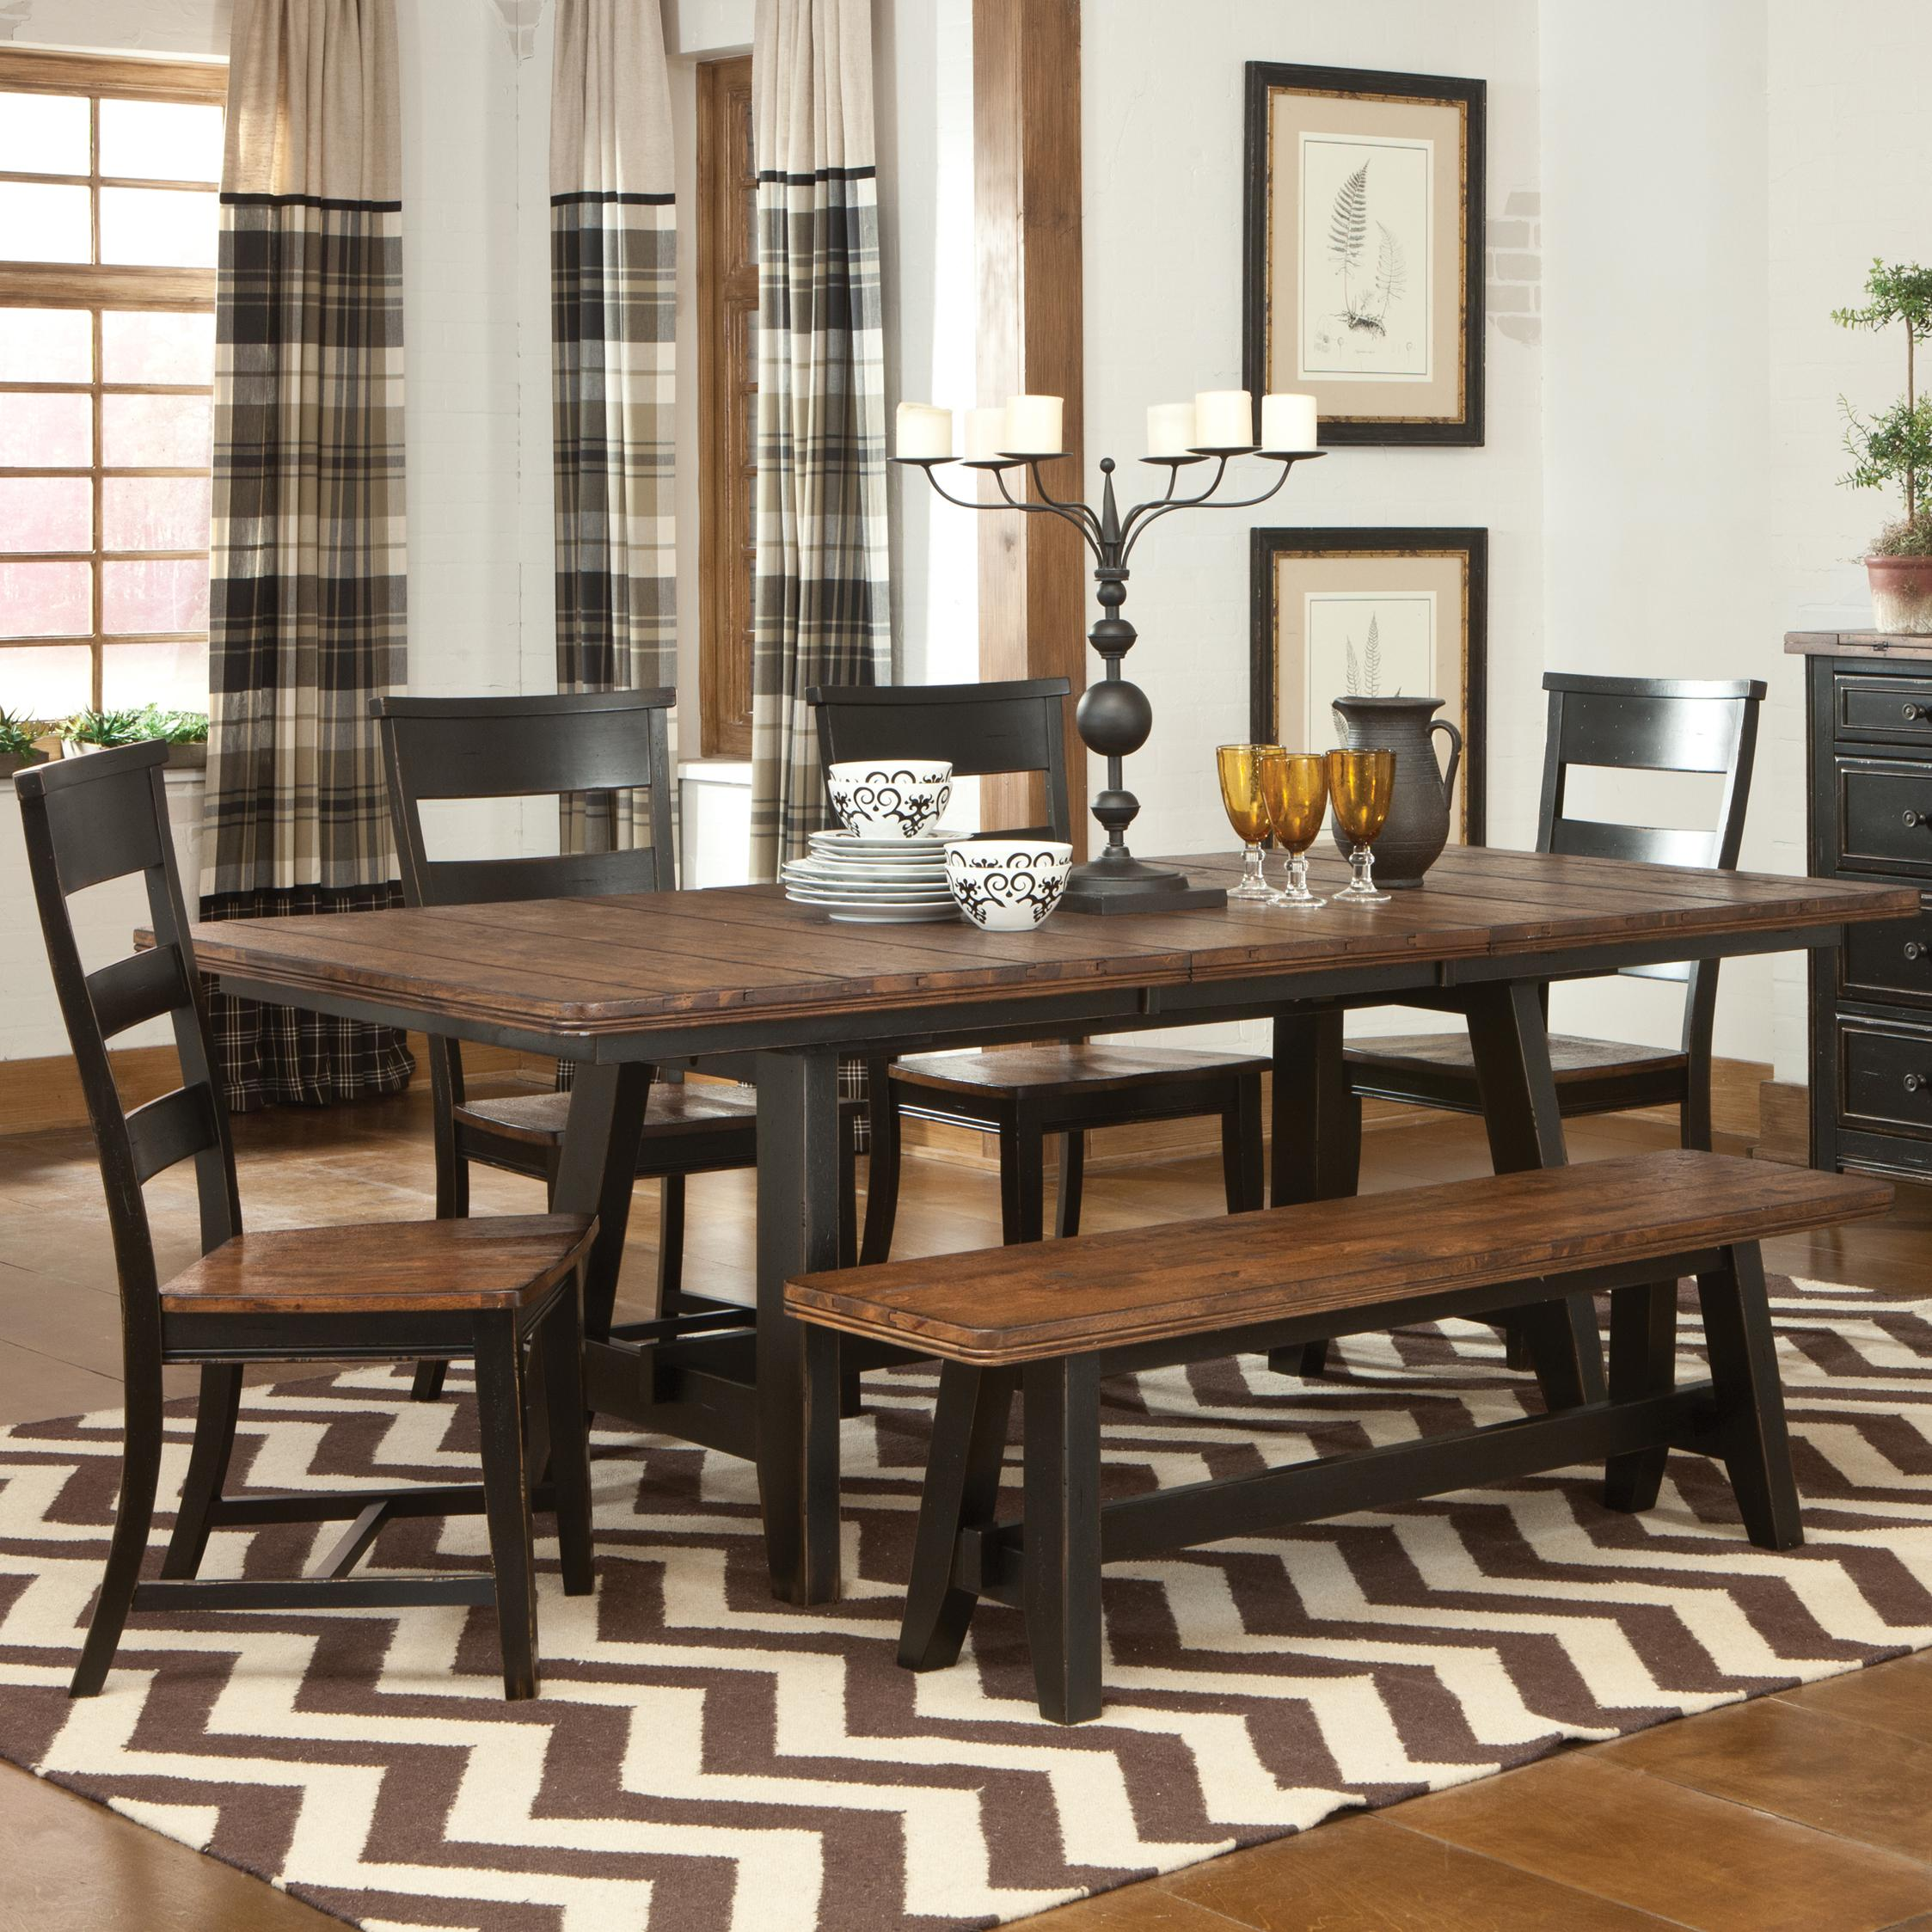 Dining Room With Bench: Most Comfortable Dining Chairs For Your Longer Dining